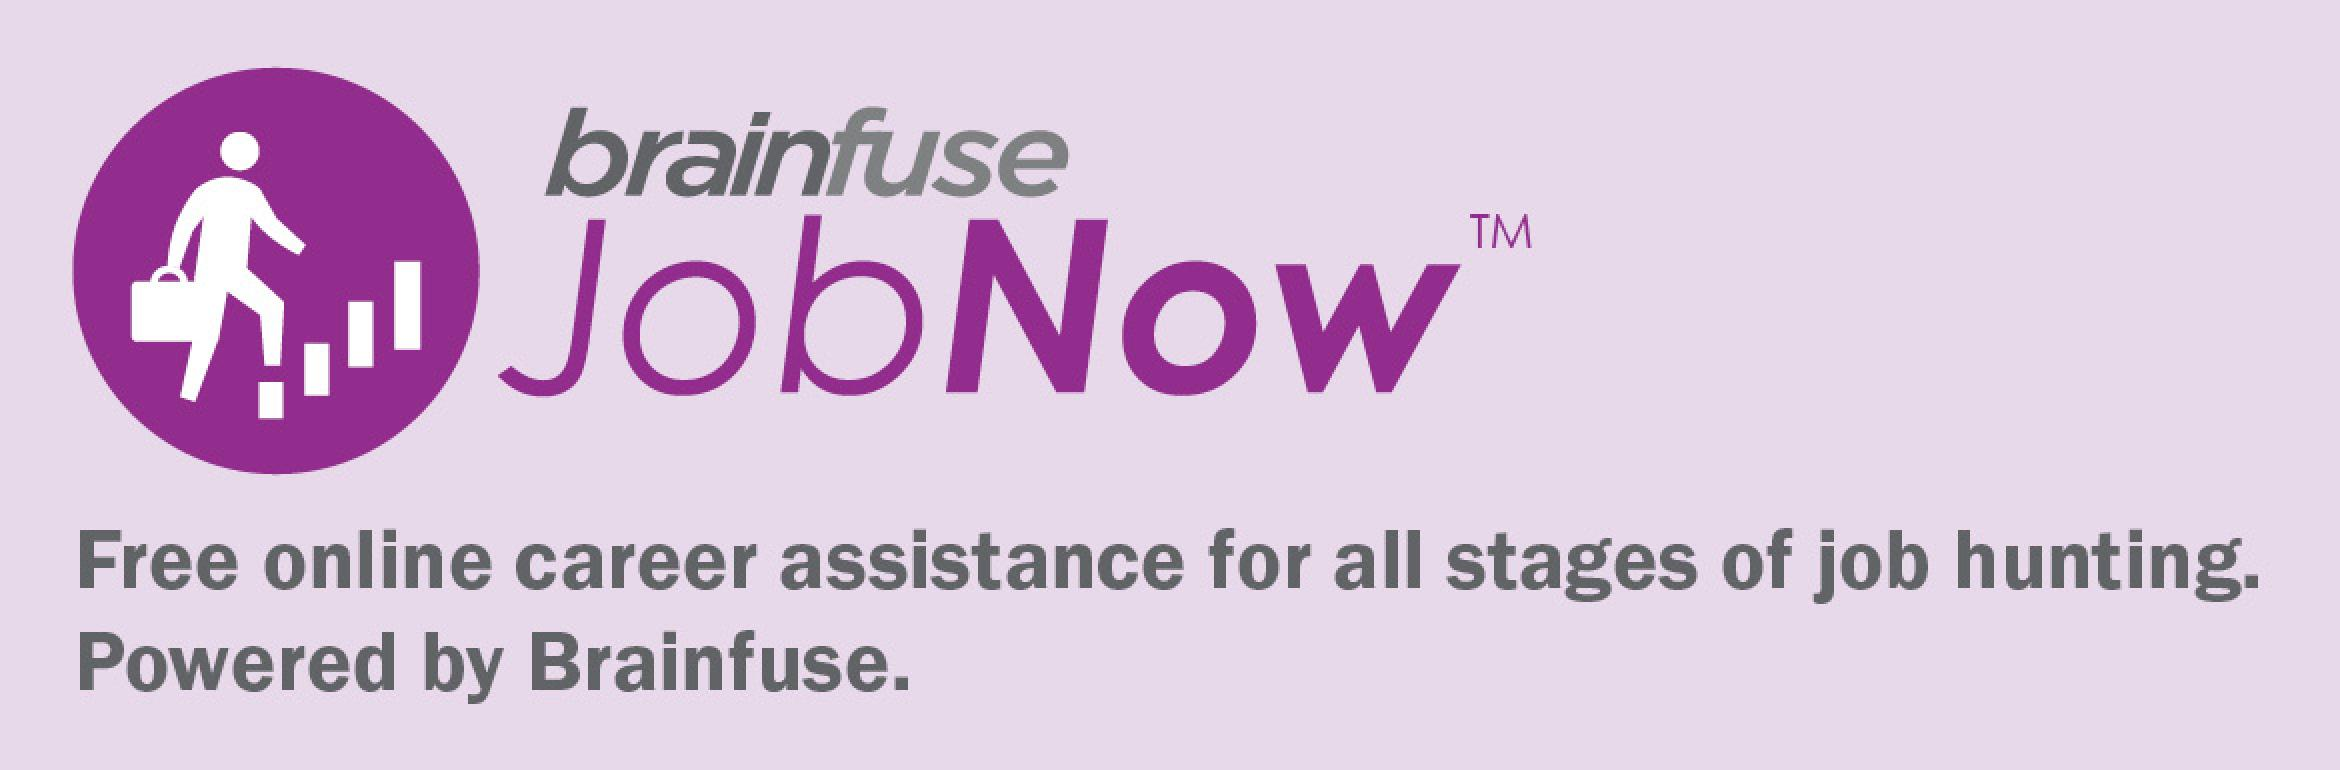 Brainfuse JobNow. Free online career assistance for all stages of job hunting. Powered by Brainfuse.